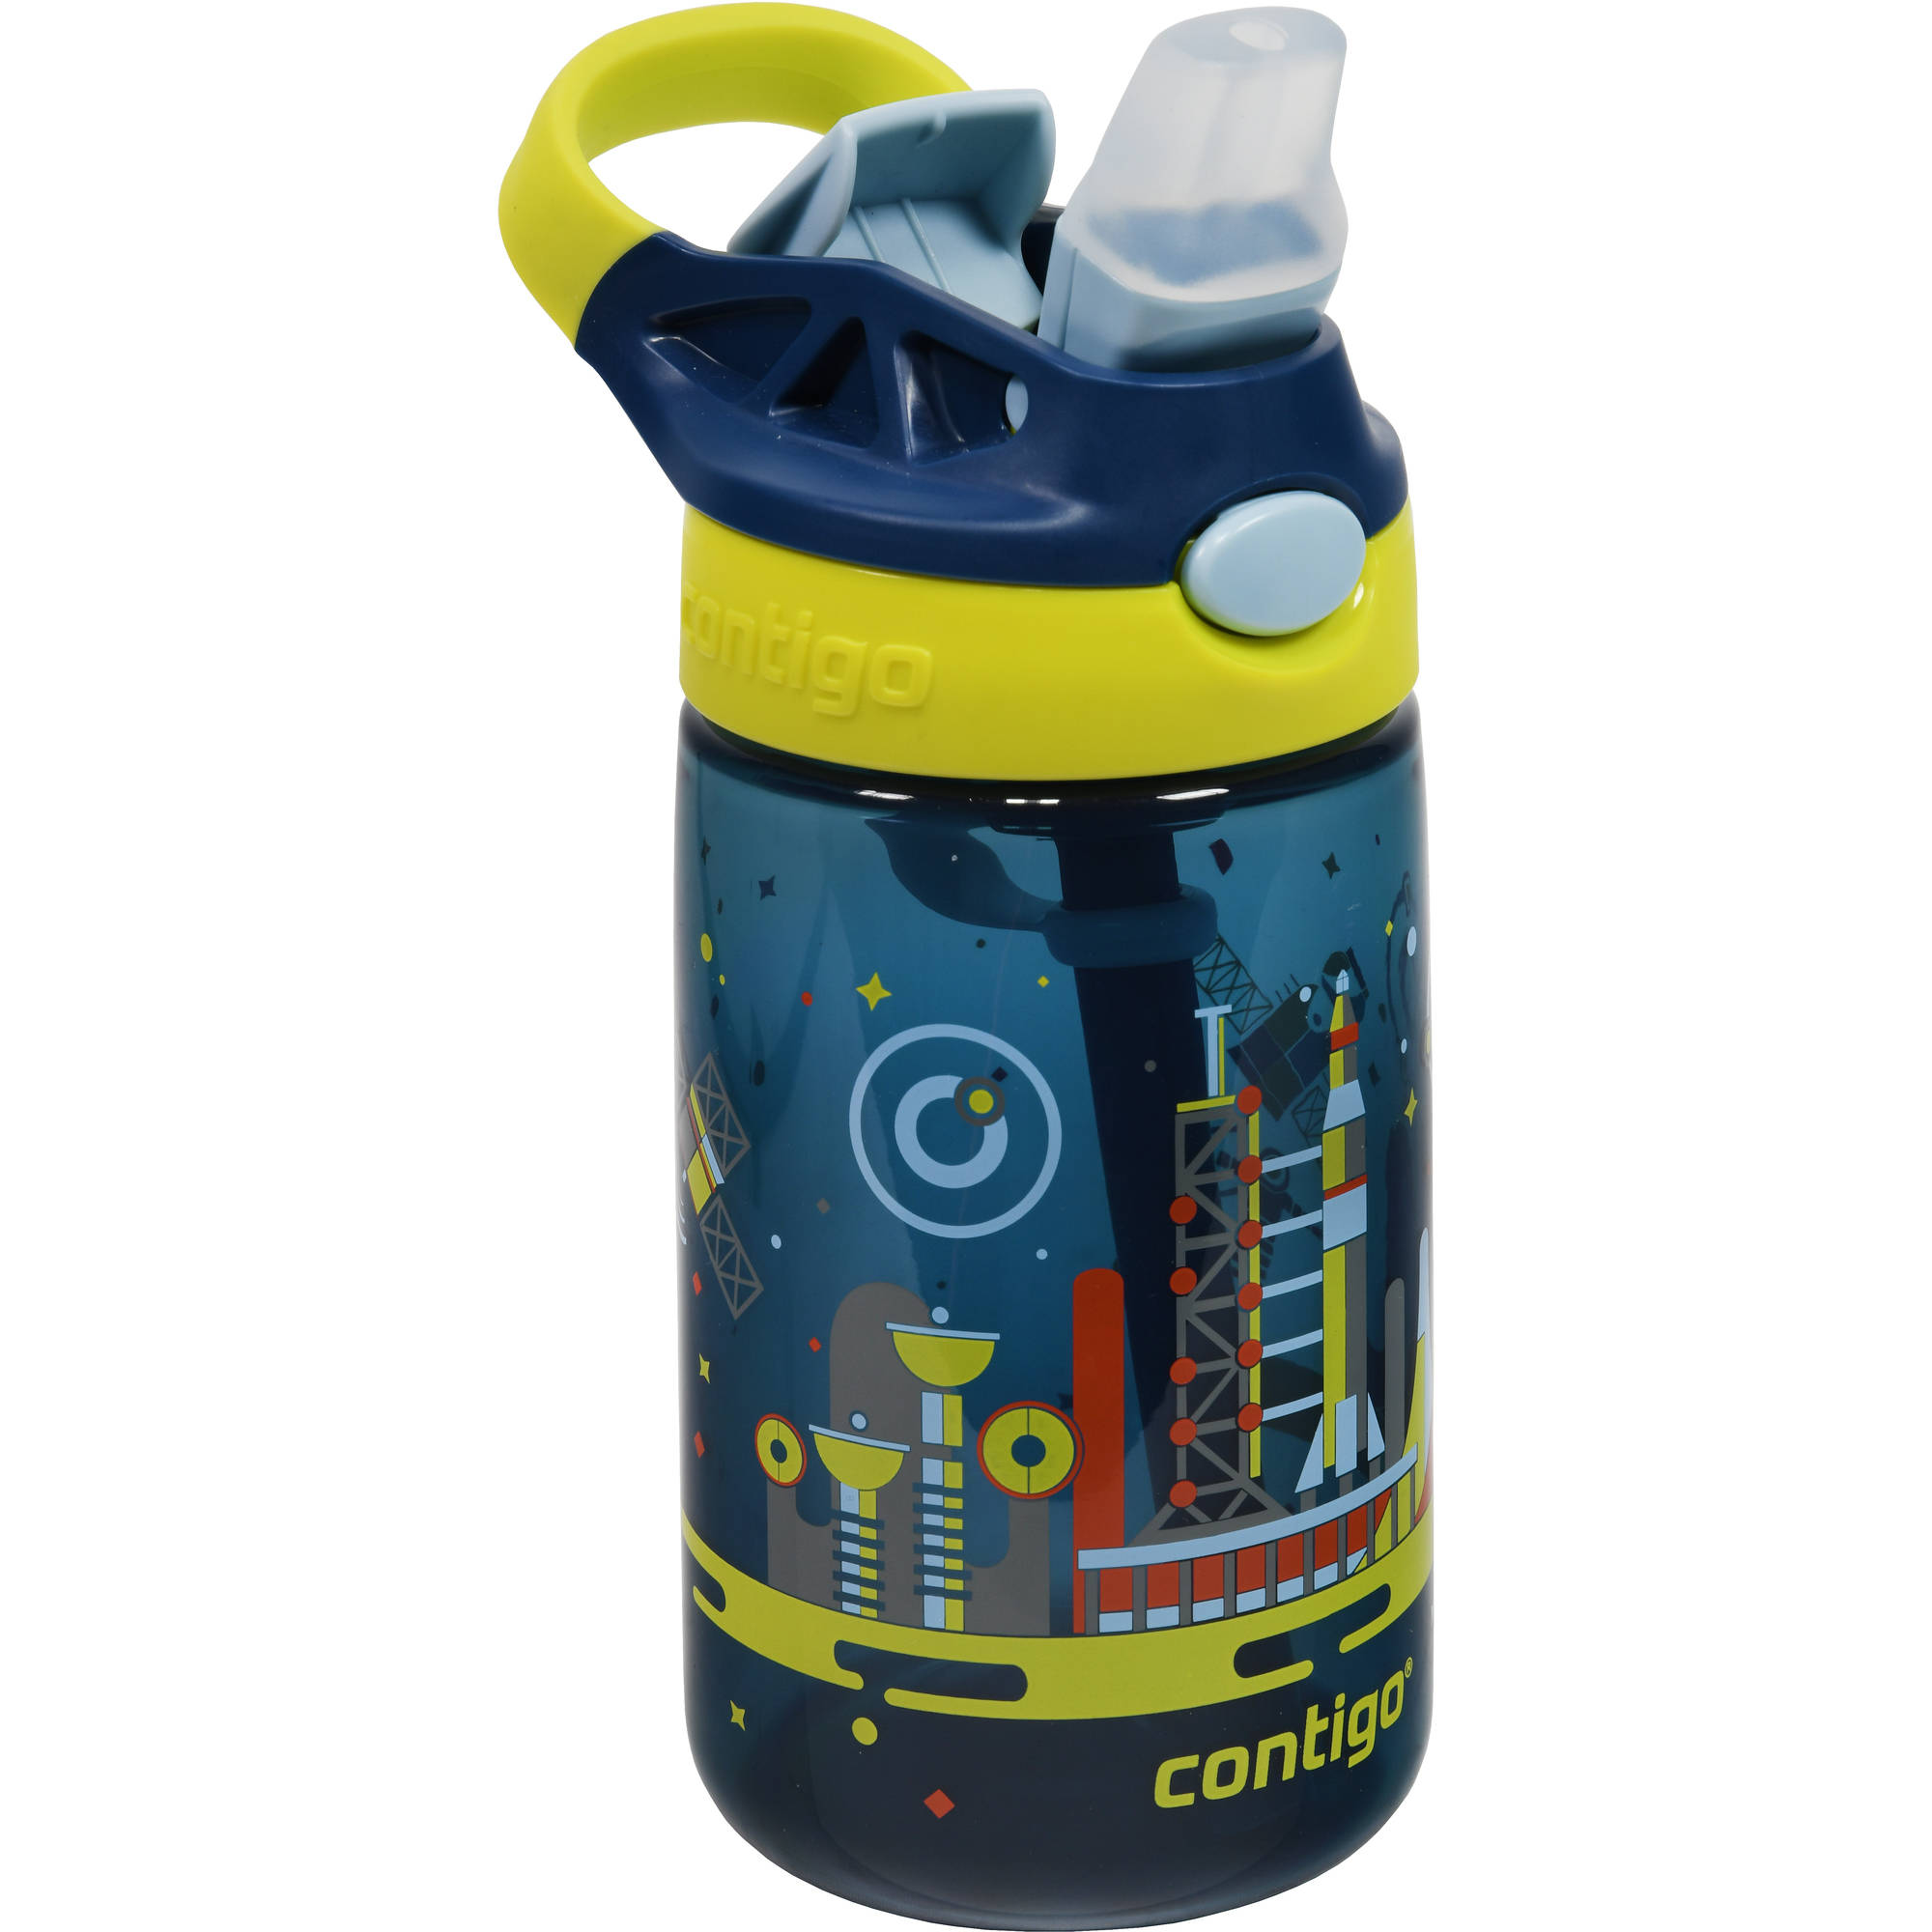 Contigo Gizmo Flip Bottle, 14 Ounces